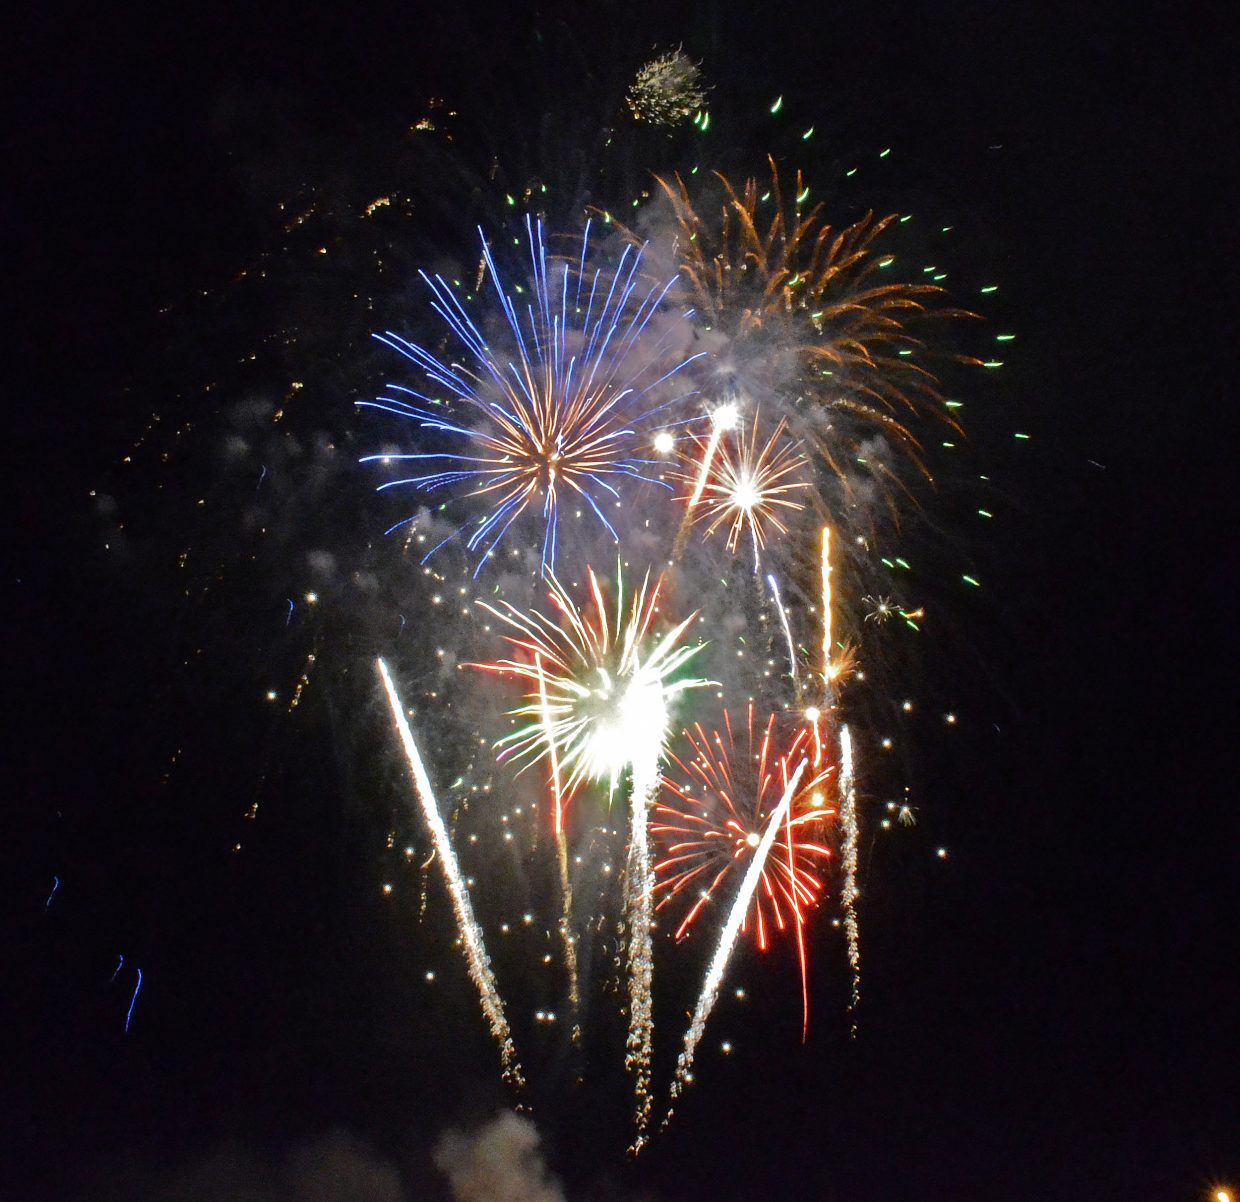 Fireworks light up the night sky on the Fourth of July.  This year, the city and county each contributed $3,000 and the fire department $2,000 for the fireworks, he said. The resulting $8,000 bought 1,532 shells from Wyoming supplier Flying Phoenix.